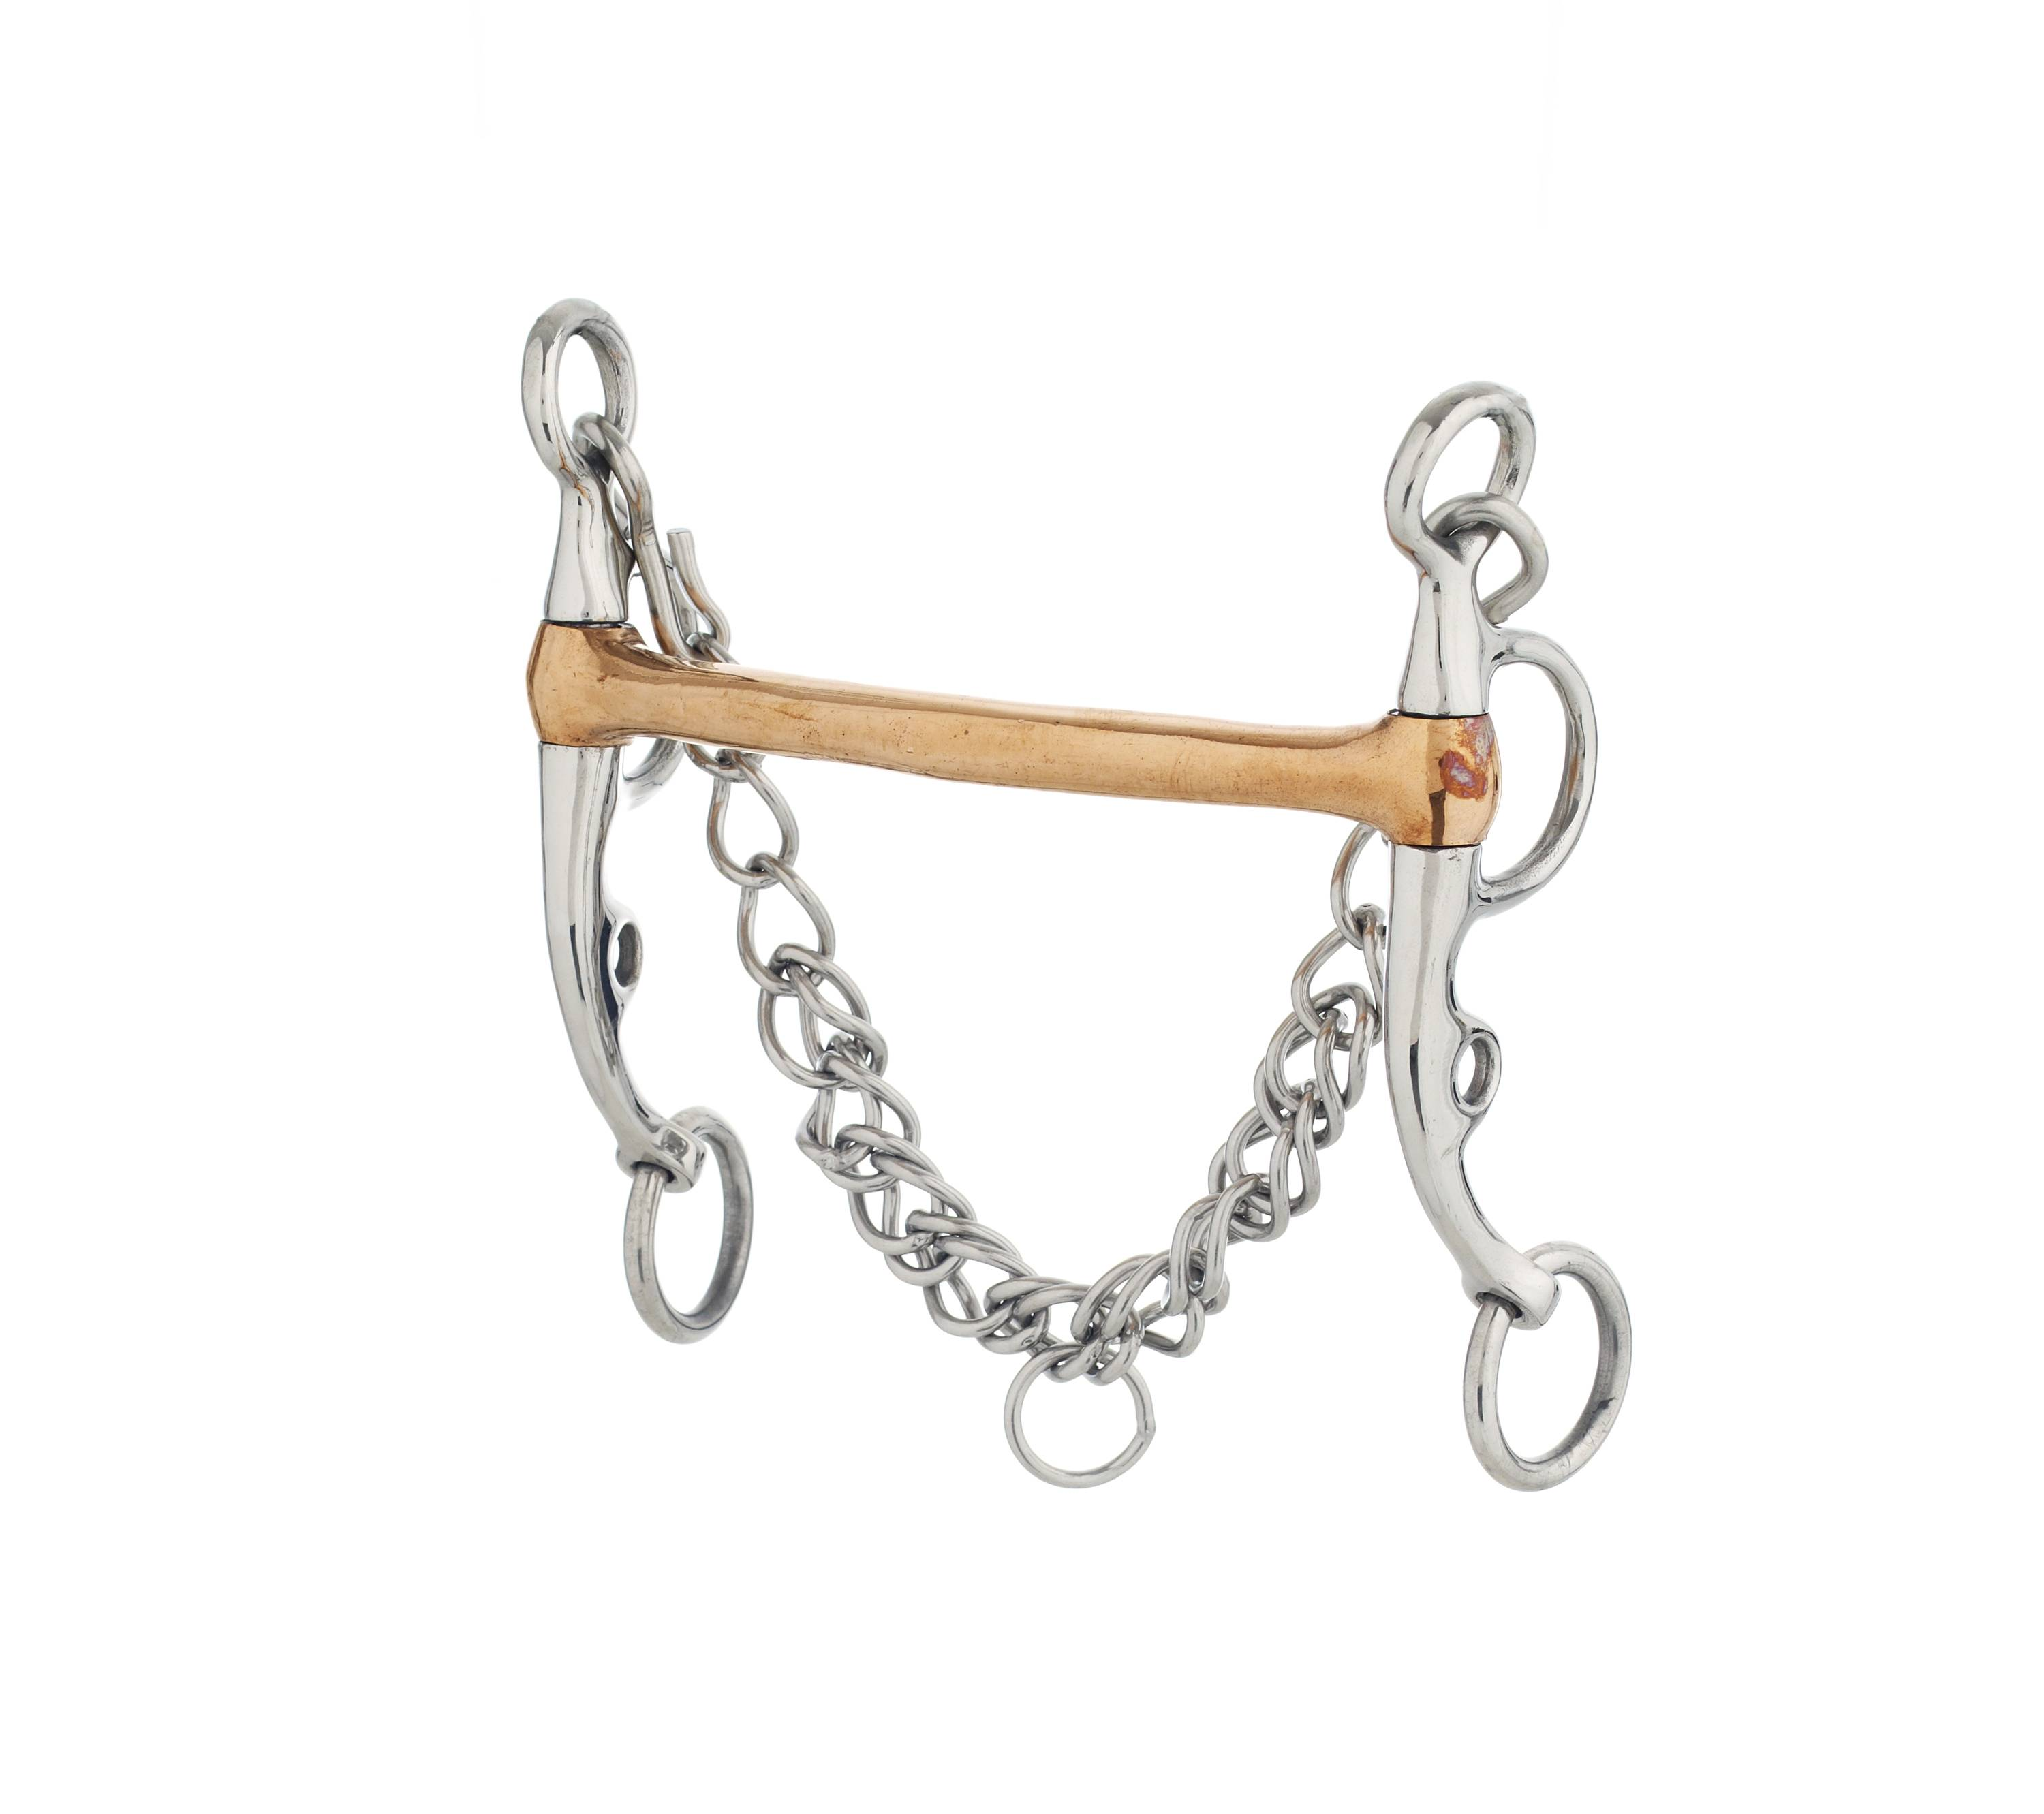 Turn-Two Equine Stainless Steel Copper Mullen Argentine Bit